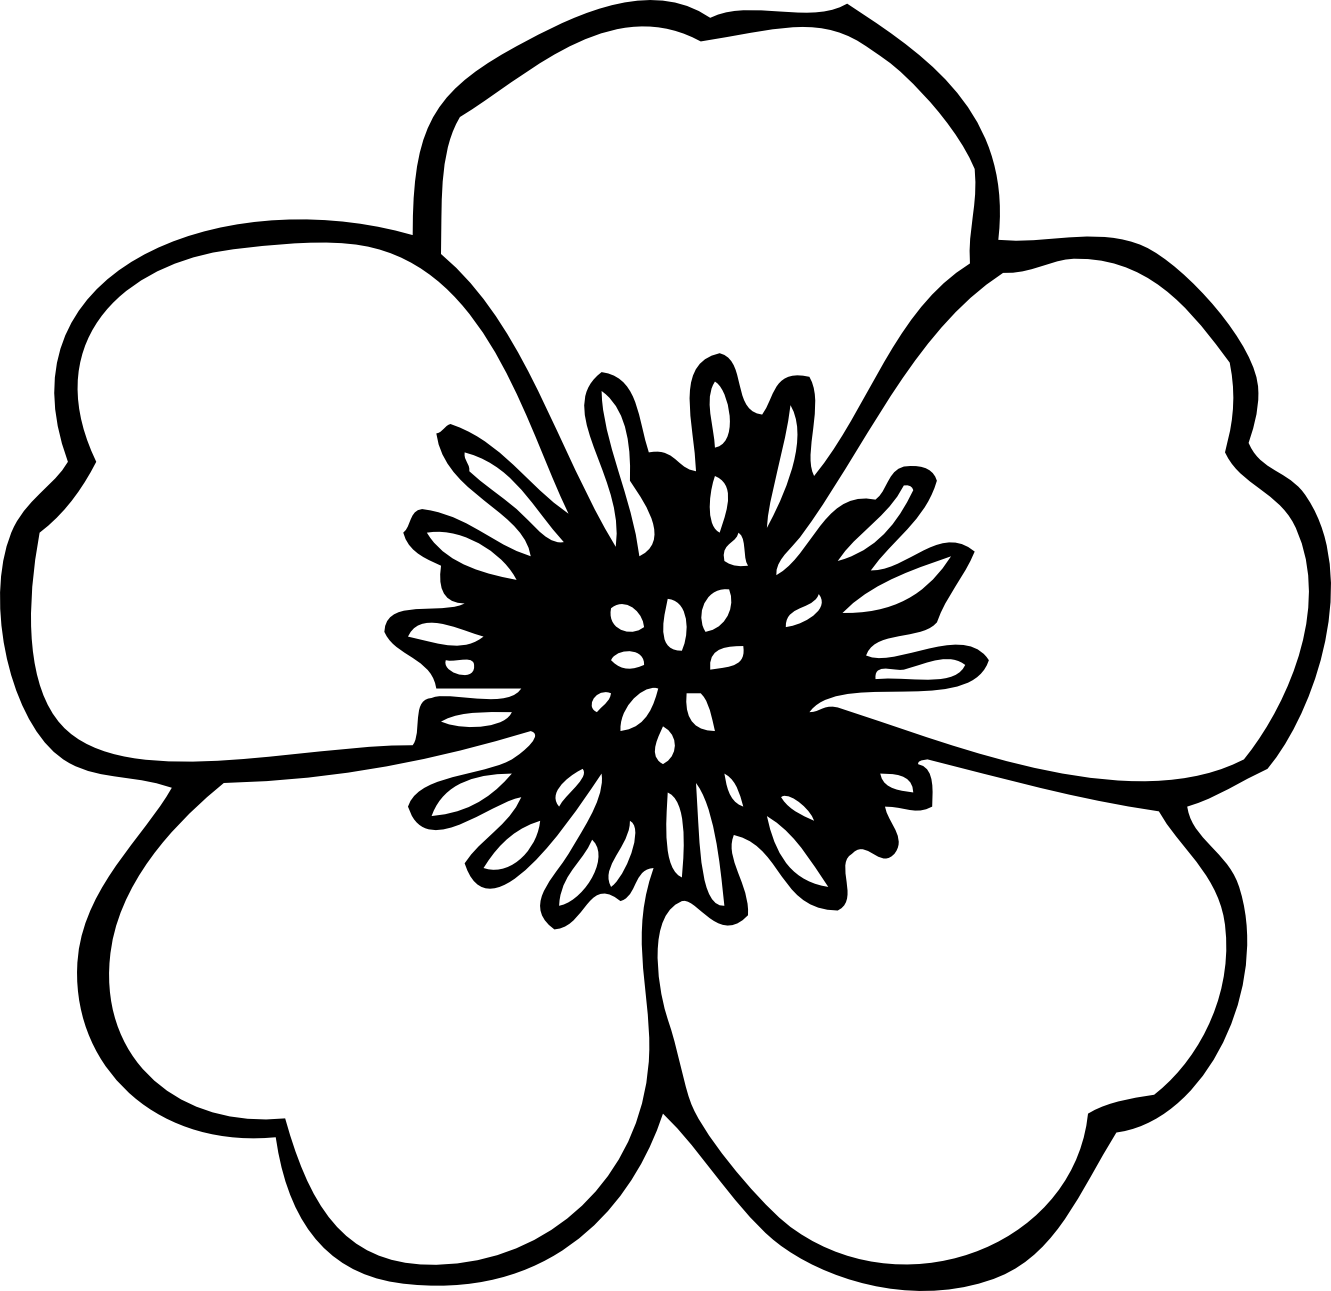 Flower  black and white simple flower clipart black and white free